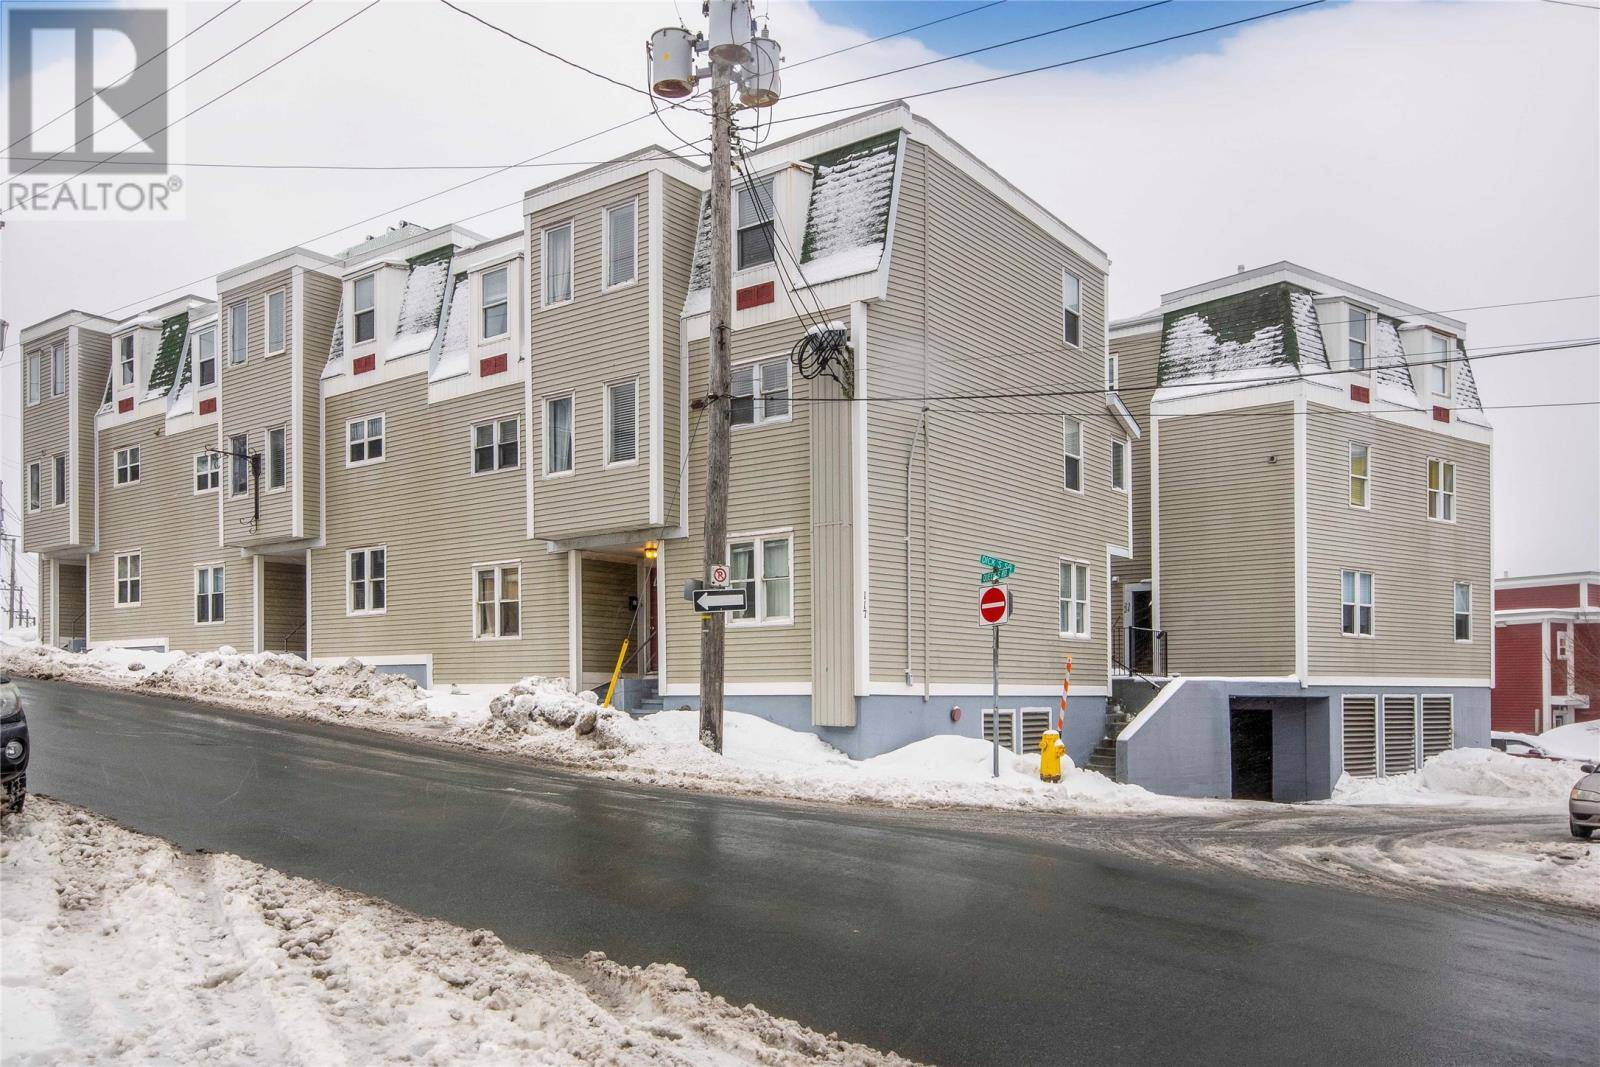 House for sale at 117 Queens Rd Unit 21 St. John's Newfoundland - MLS: 1211386